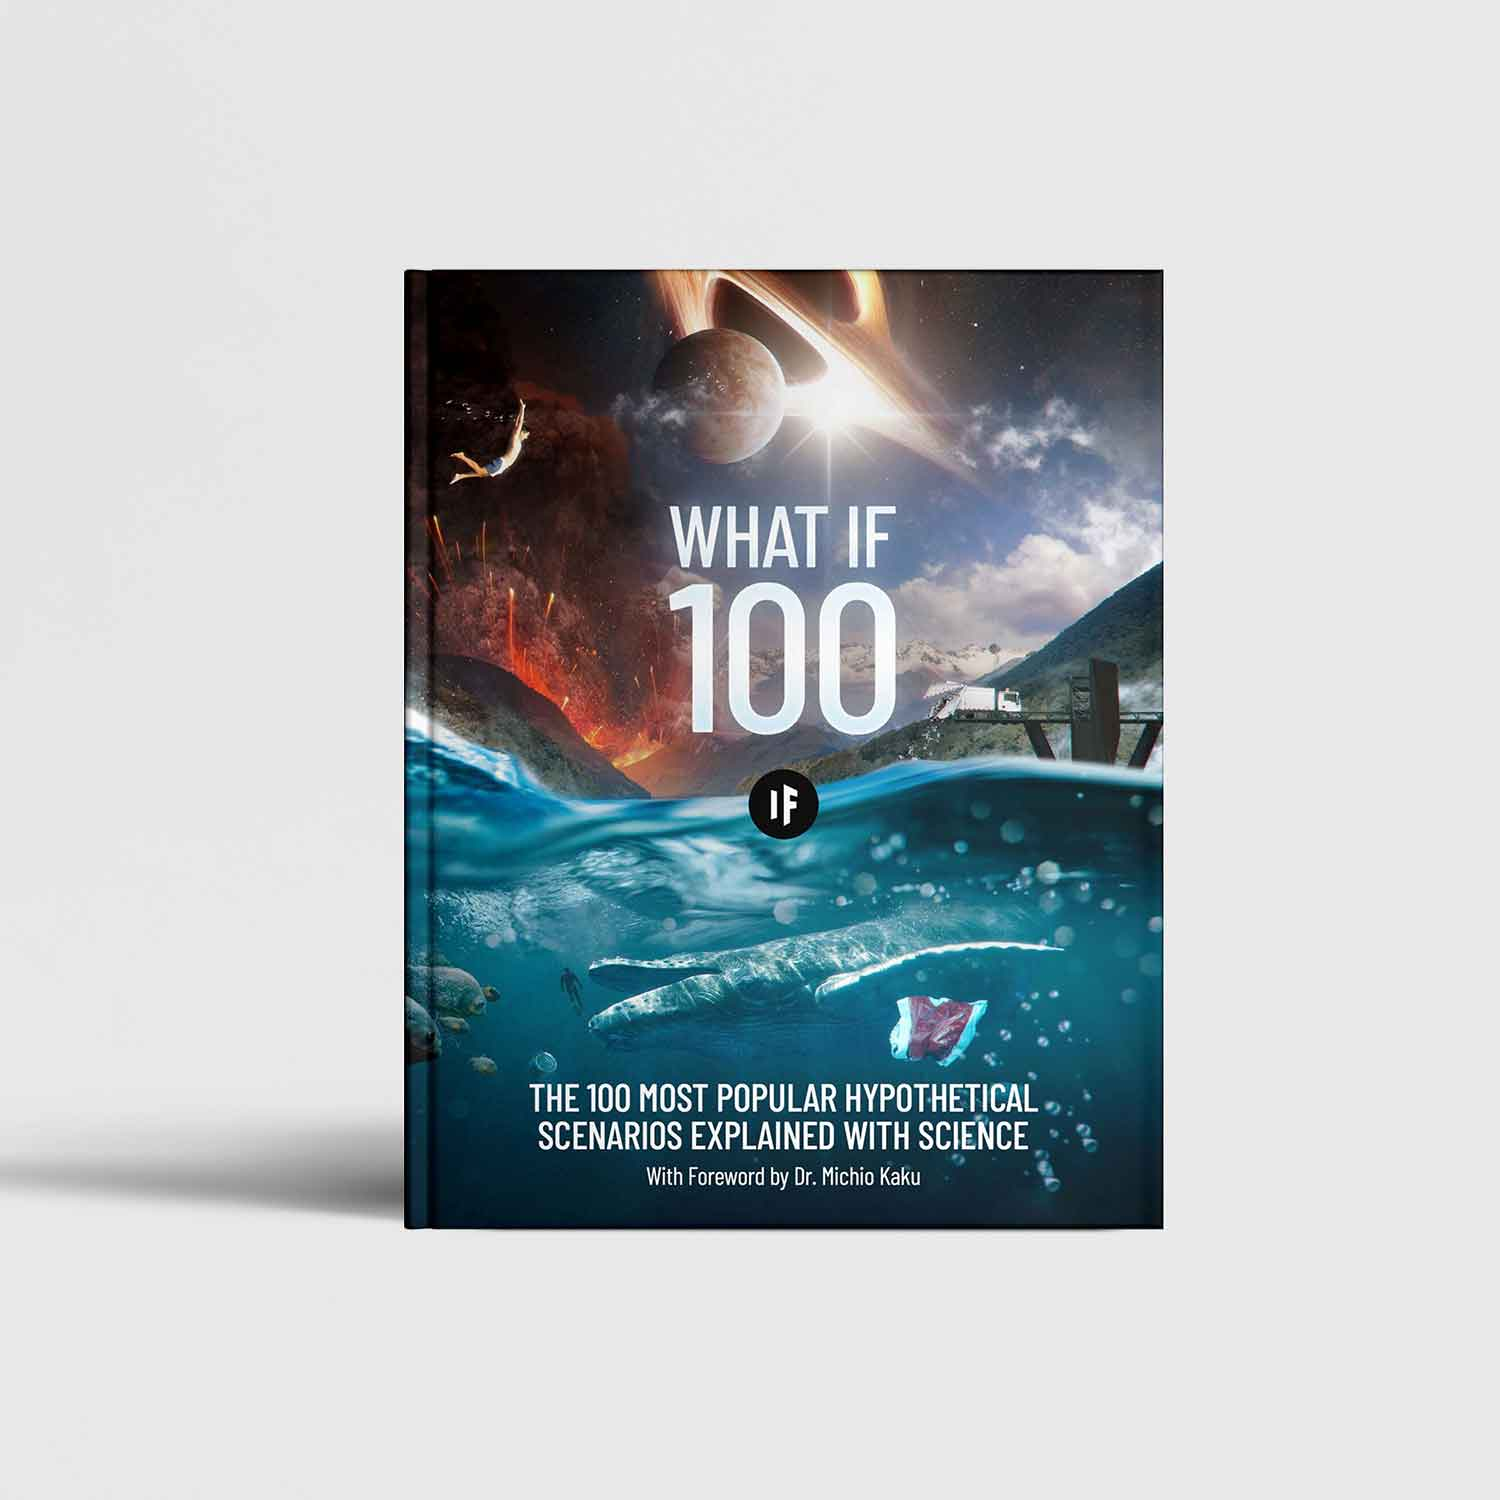 The 'What If 100' Book: The Most Popular Hypothetical Scenarios Explained With Science